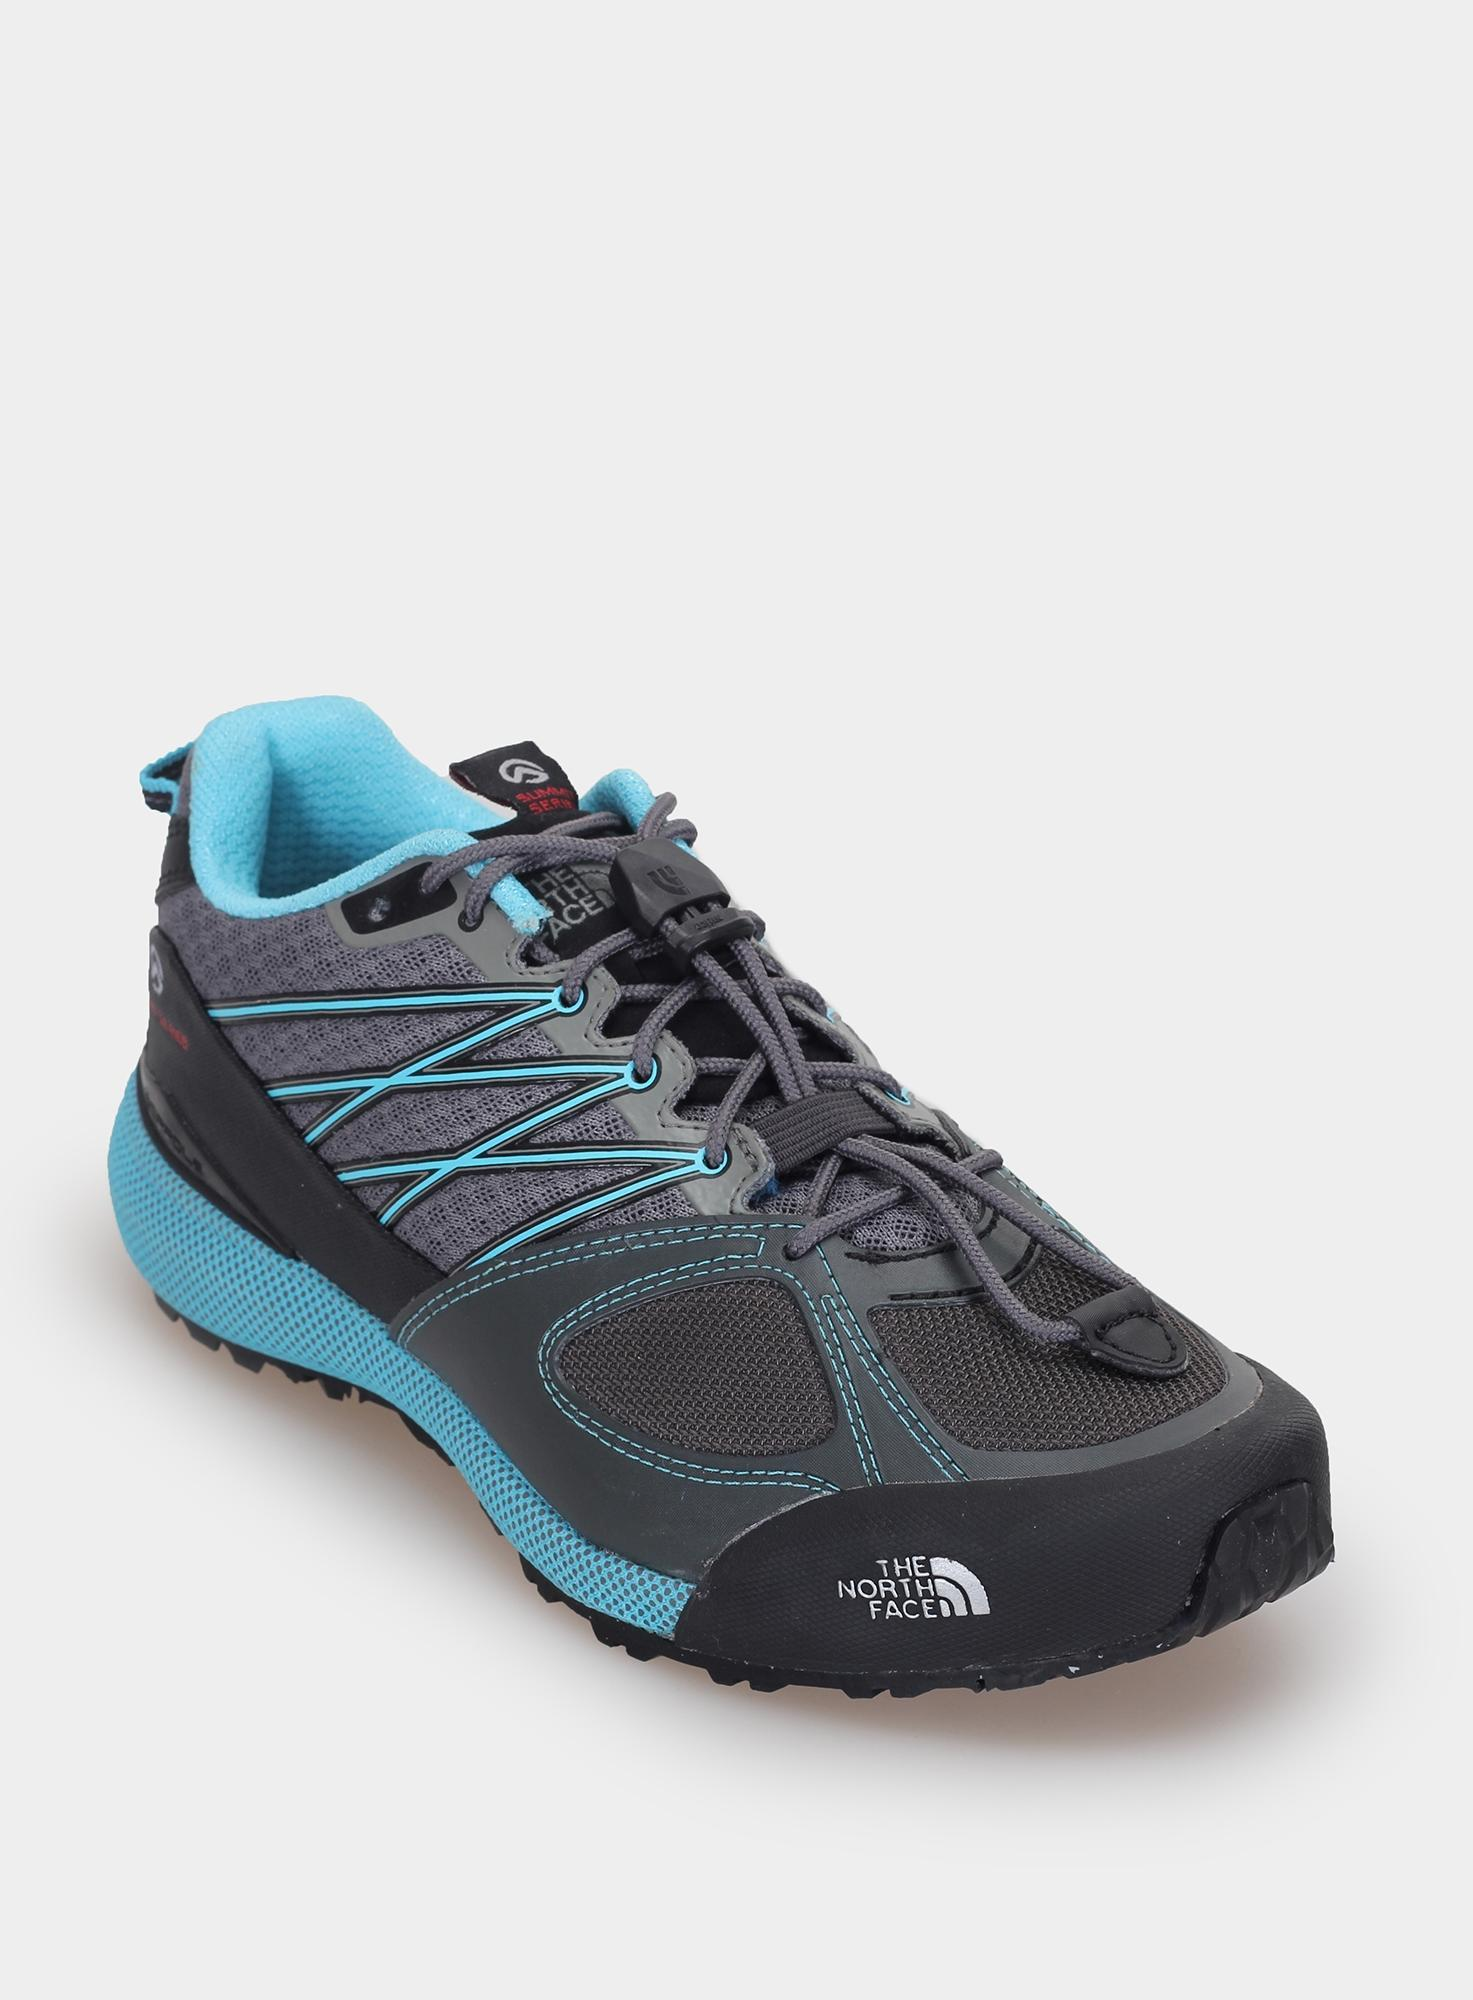 buty-podejsciowe-the-north-face-verto-approach-ii-lady-pache-grey-fortuna-blue_1